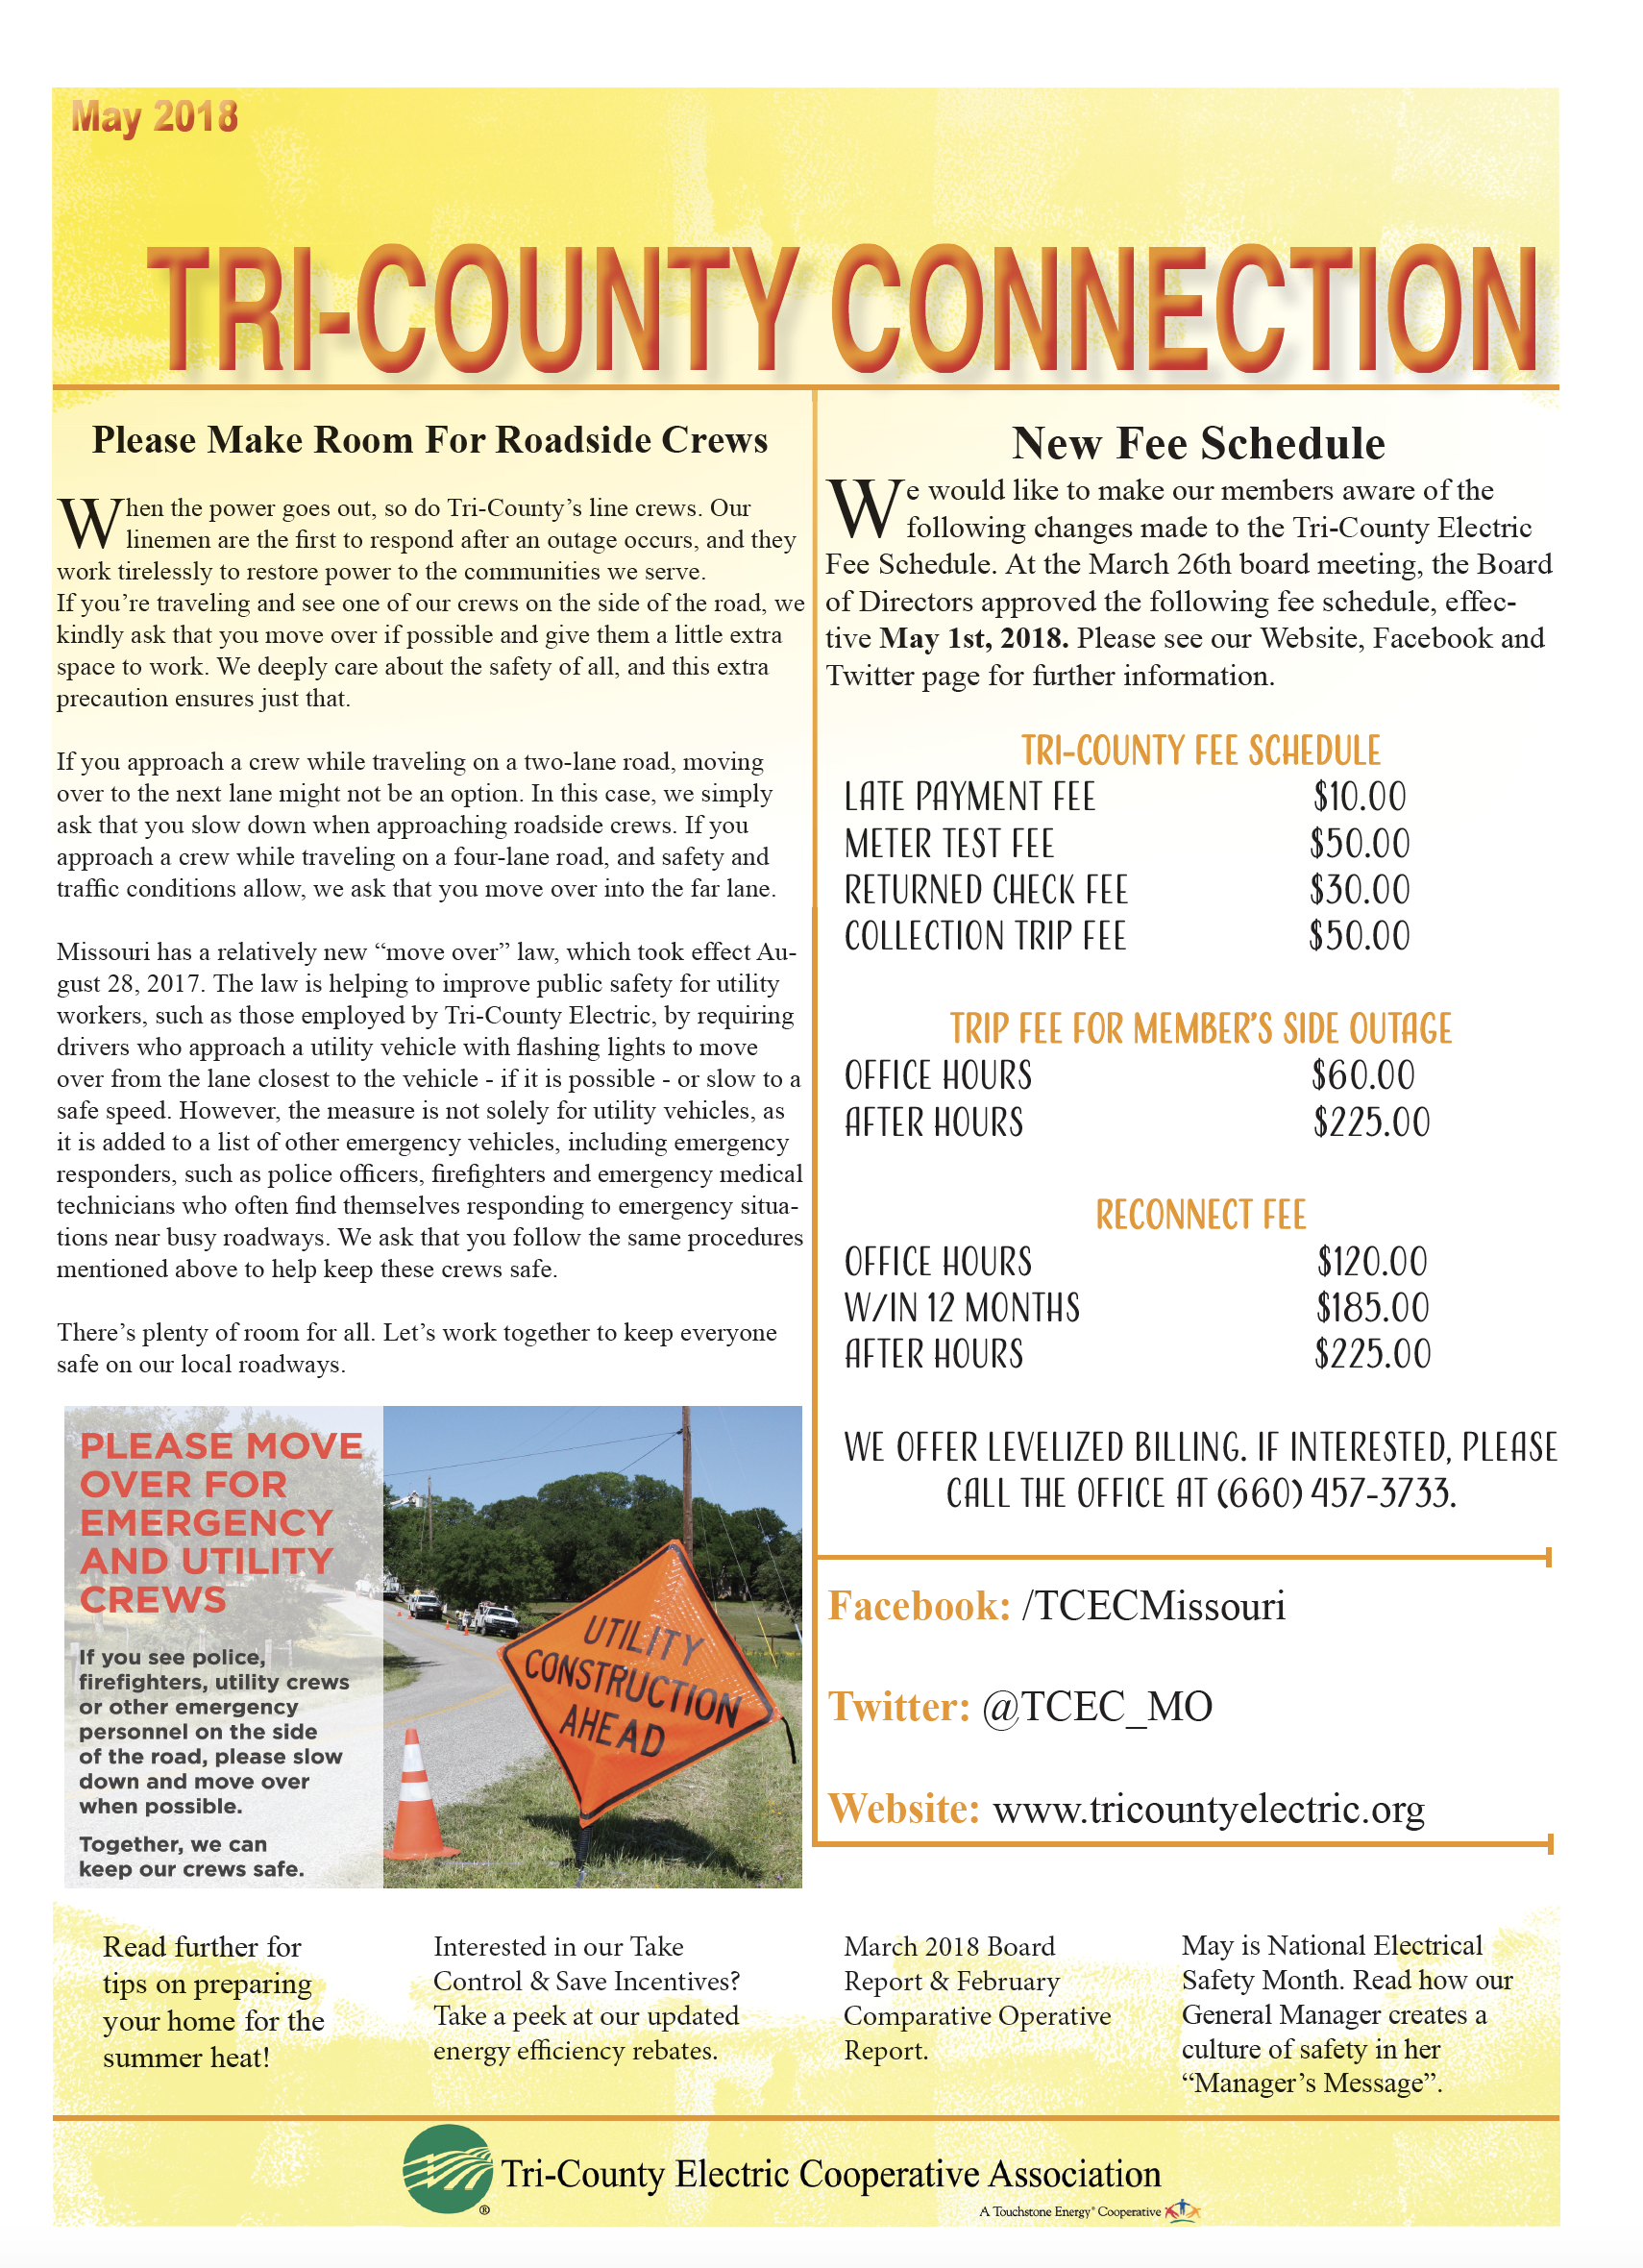 Tri-County Connection Newsletters | Tri-County Electric